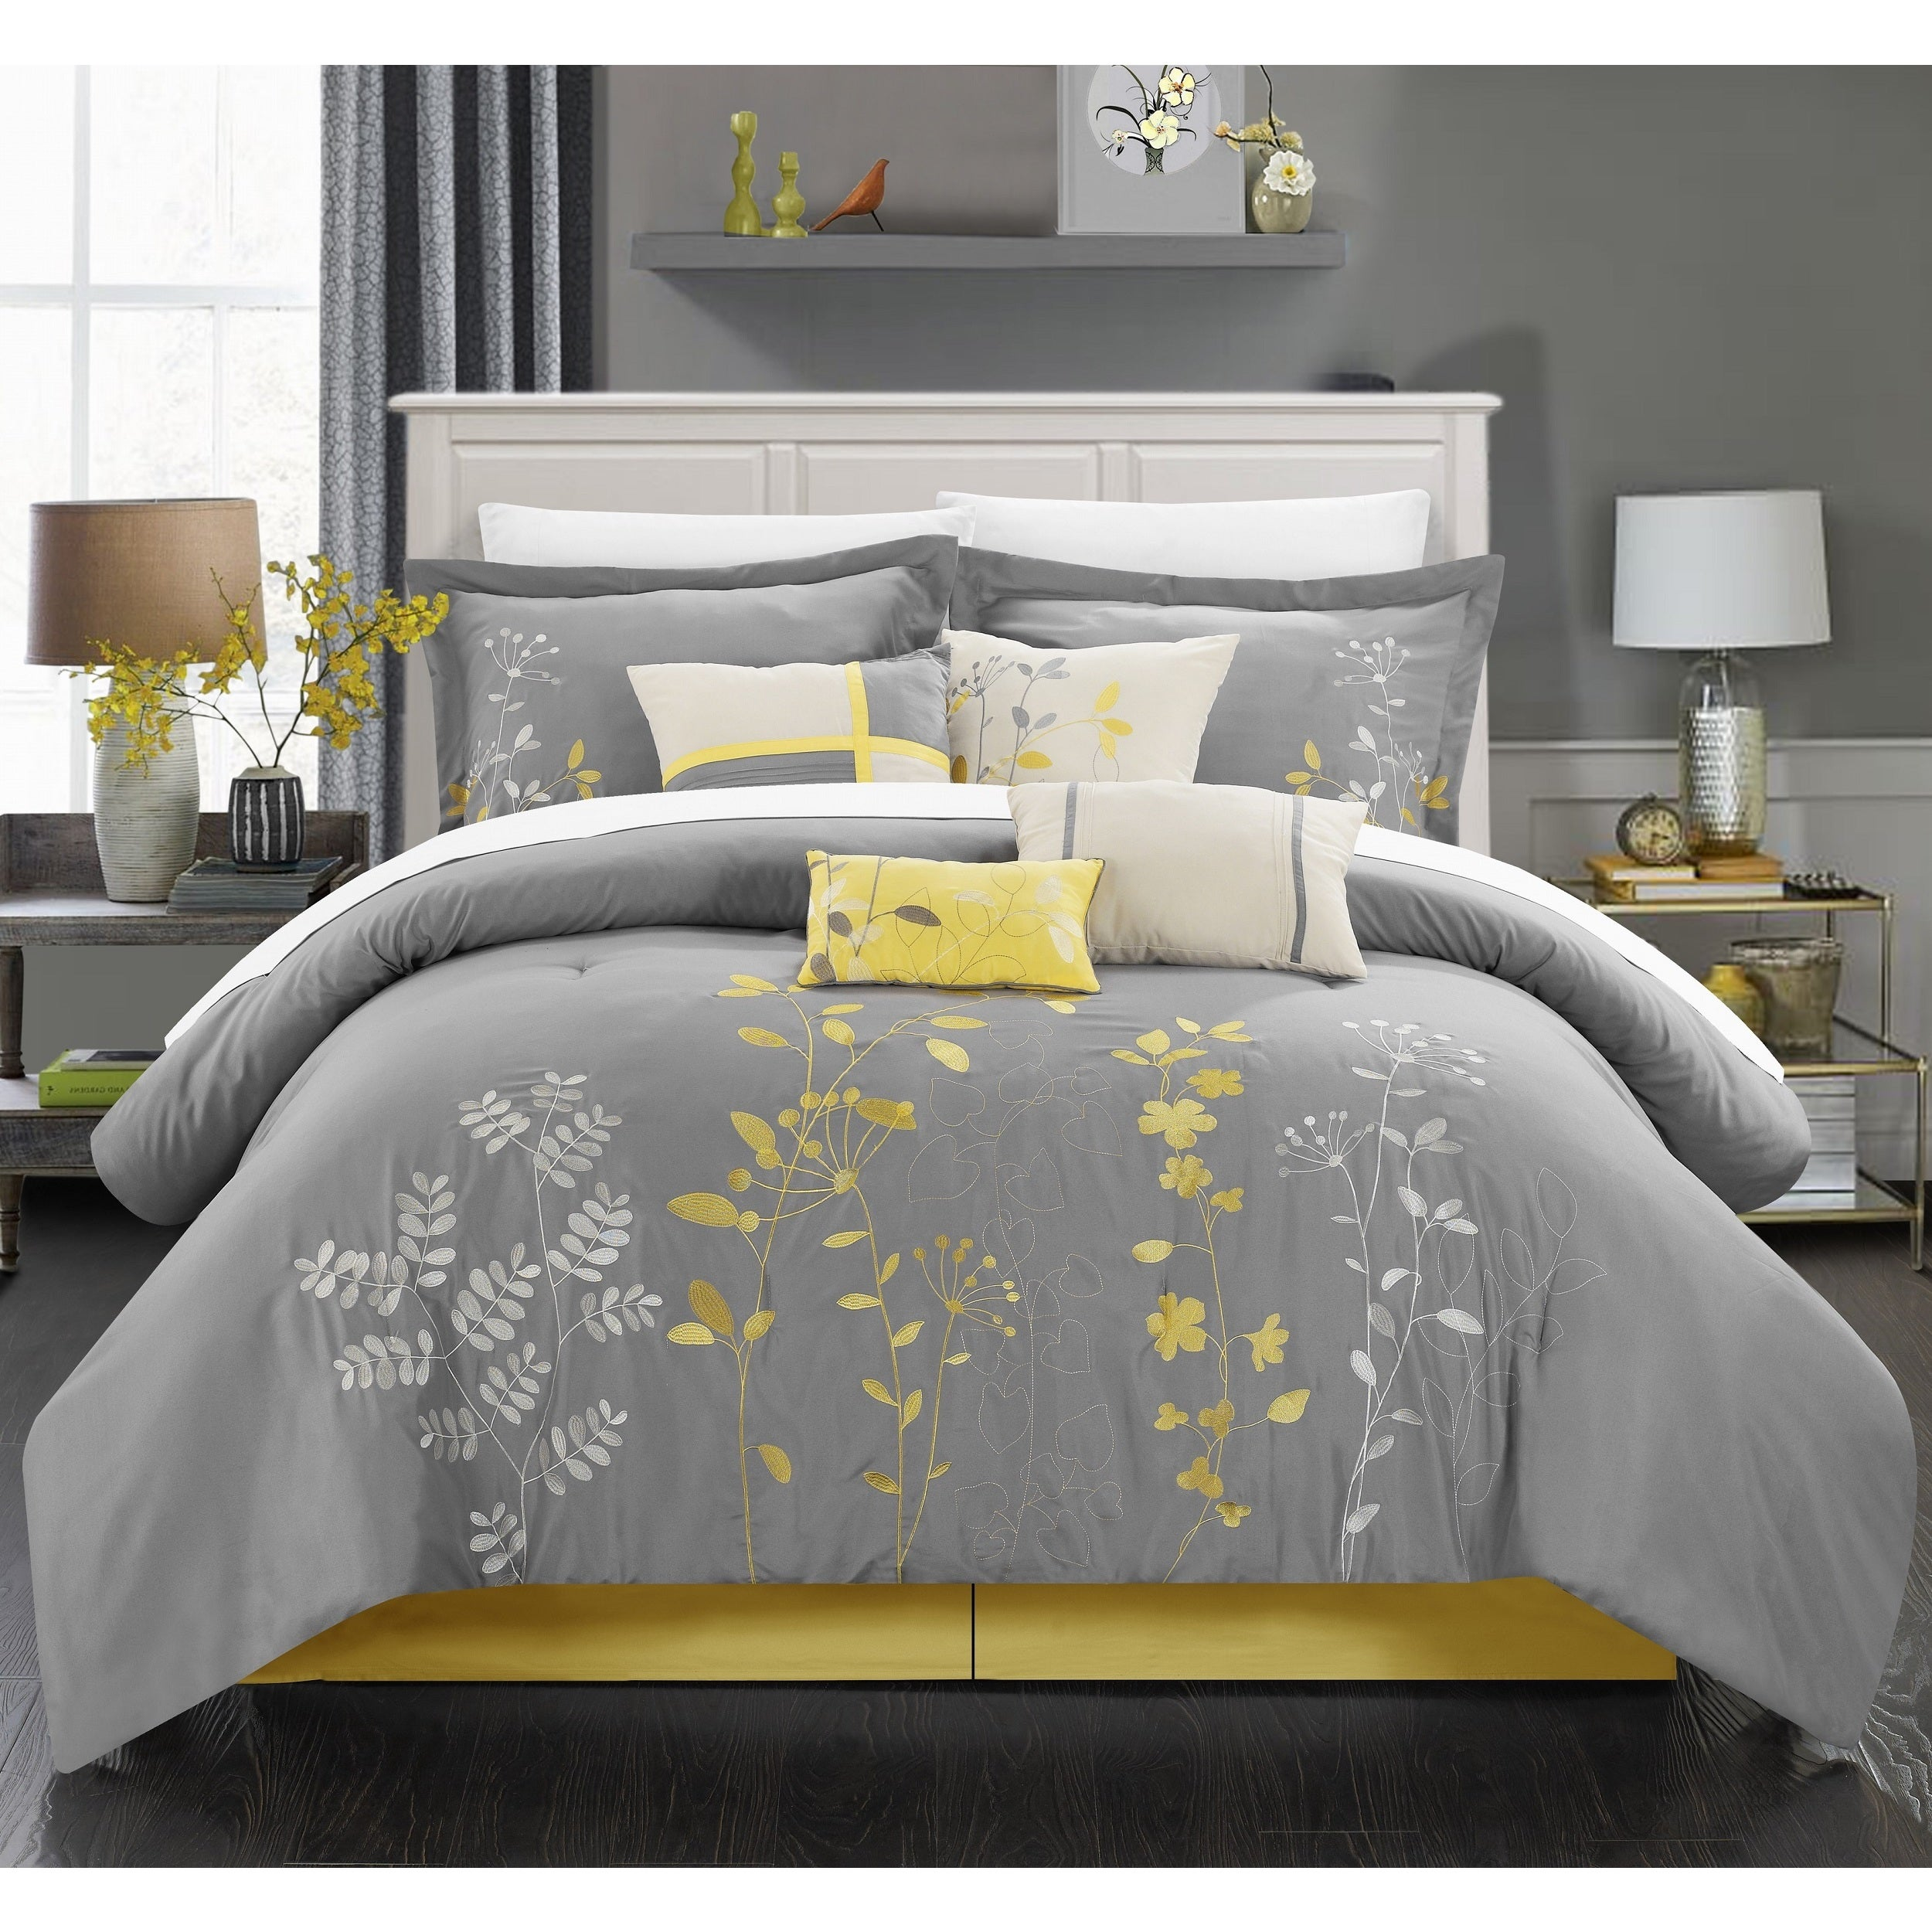 Oliver & James Lorna Yellow Embroidered 12-piece Bed in a Bag with Sheet Set - Thumbnail 0